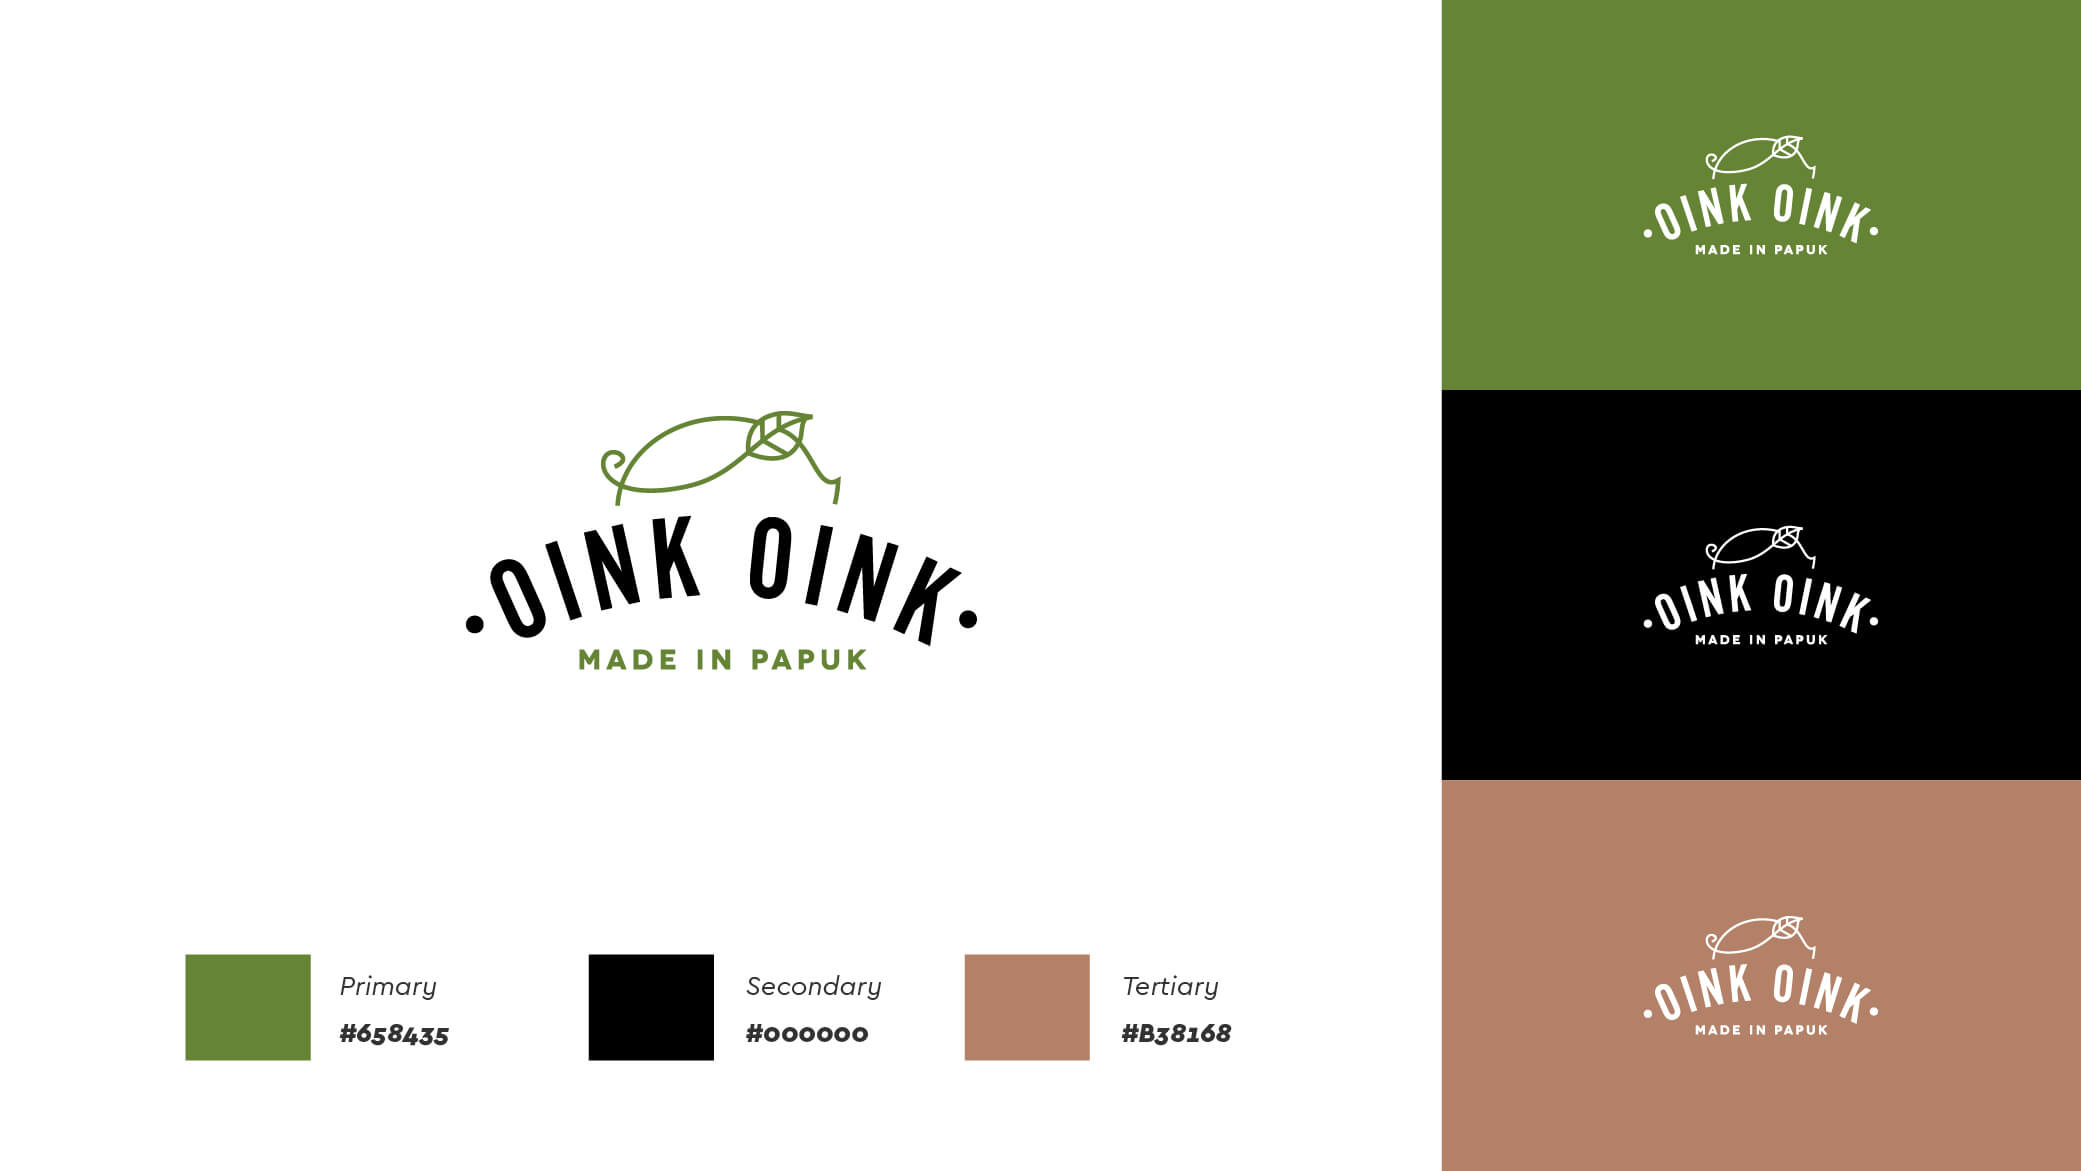 OinkOink colors